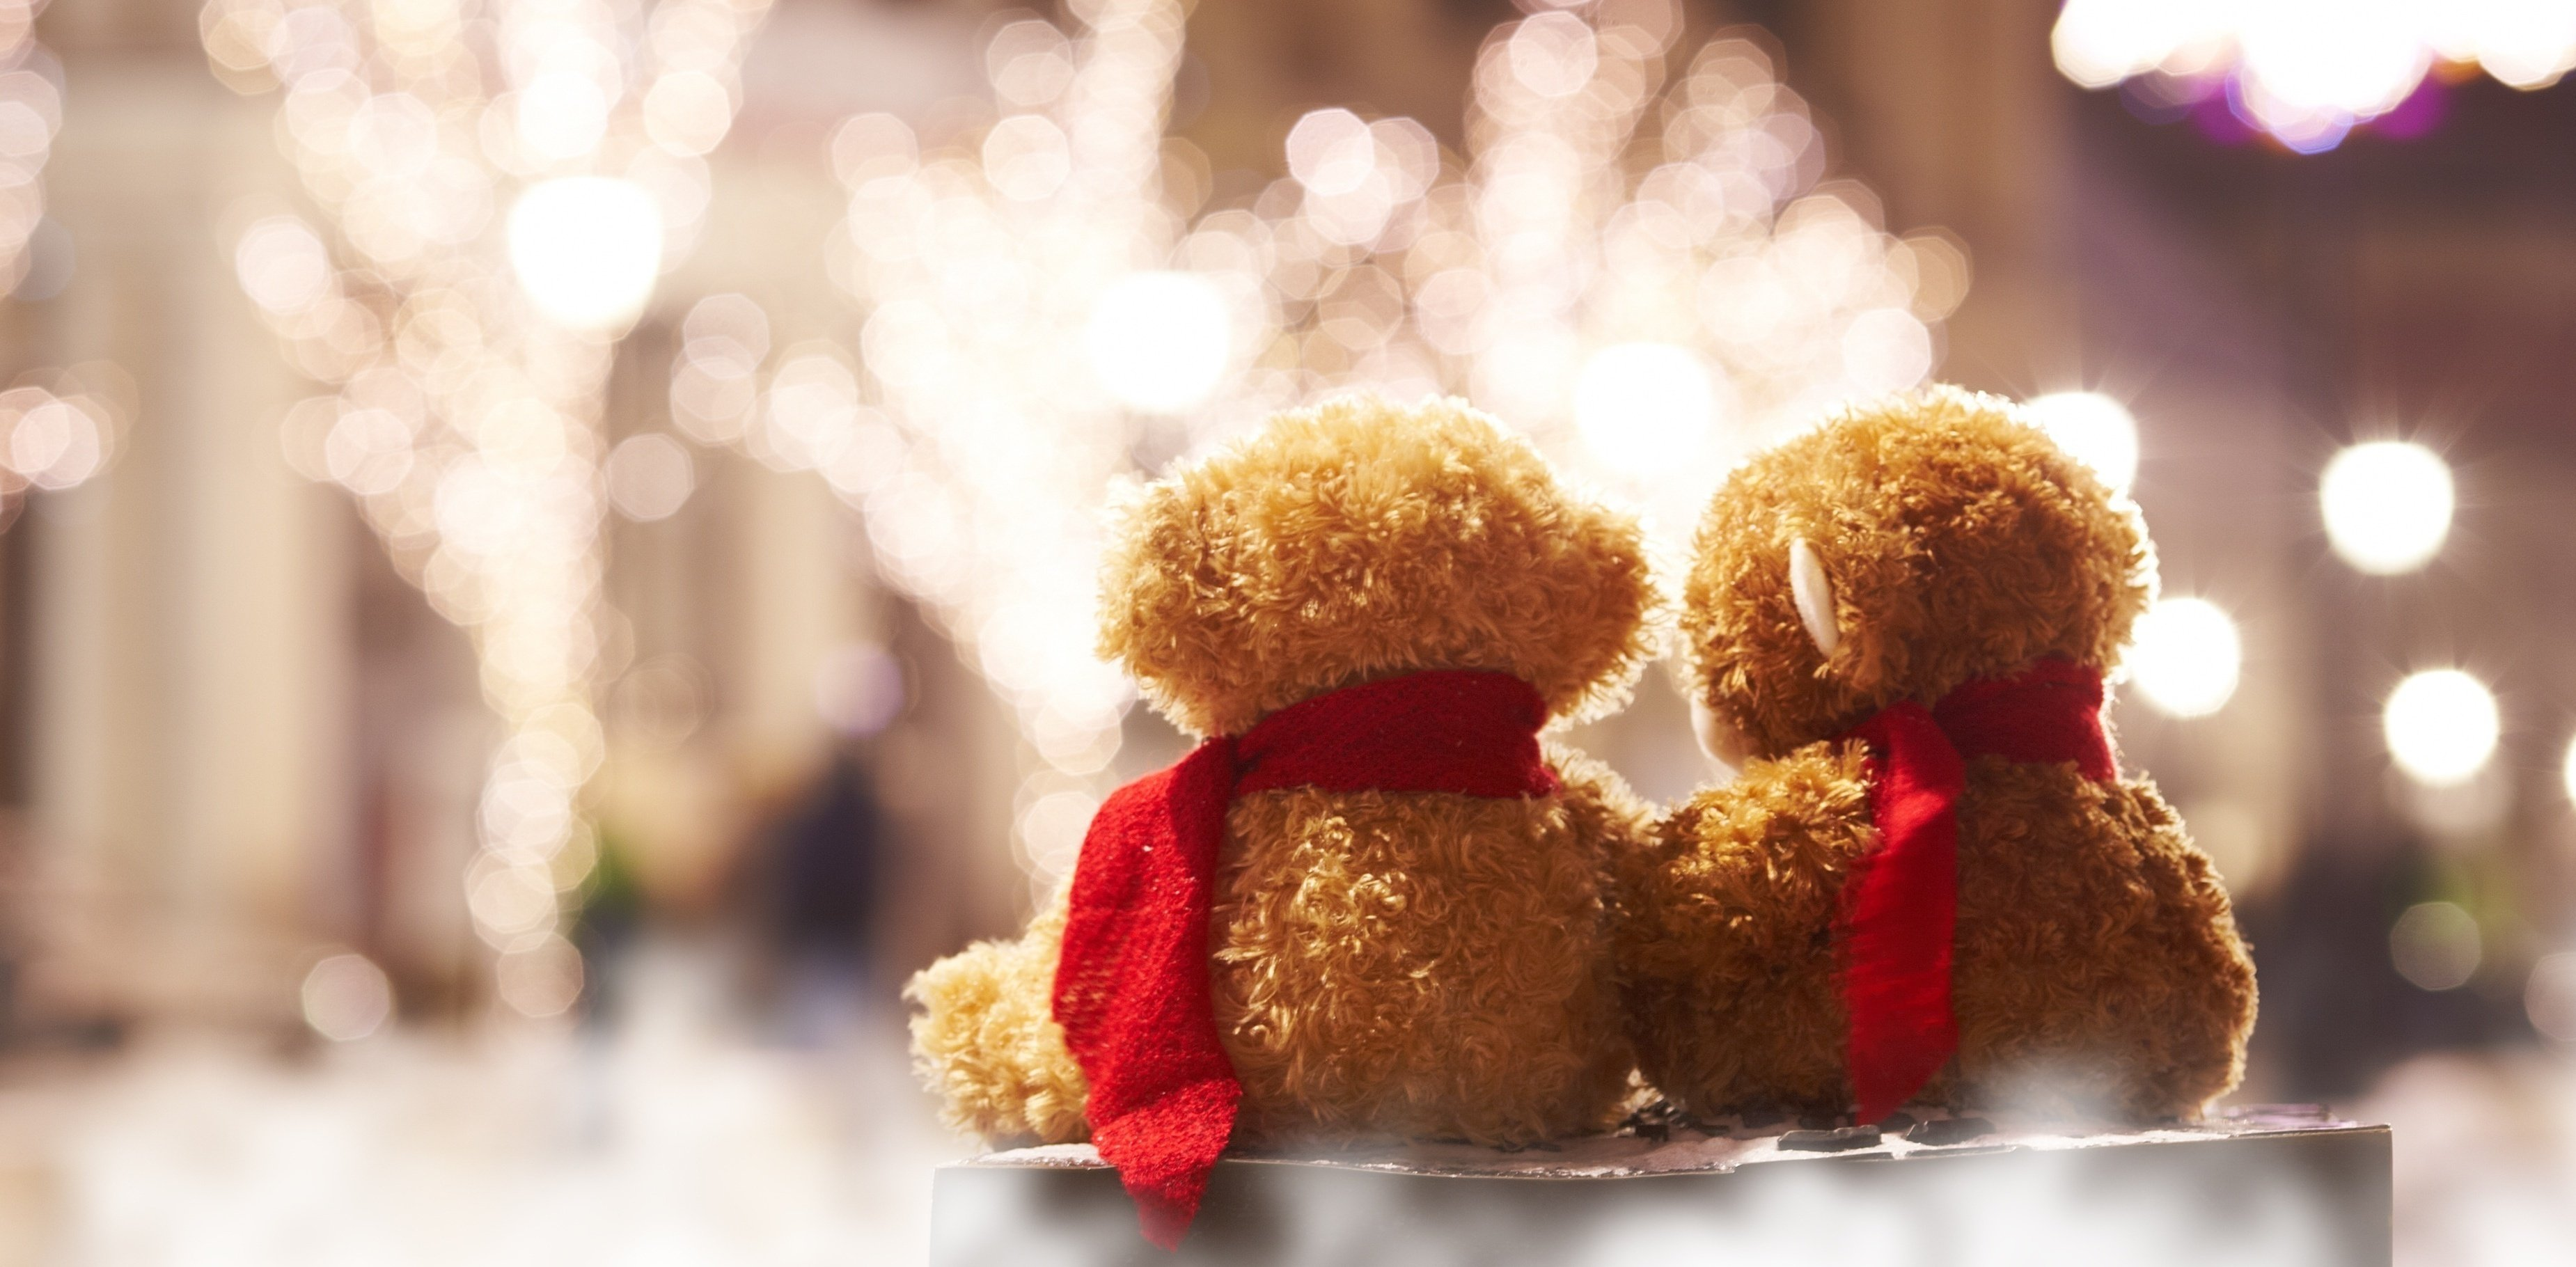 Wallpaper Teddy Bear Couple